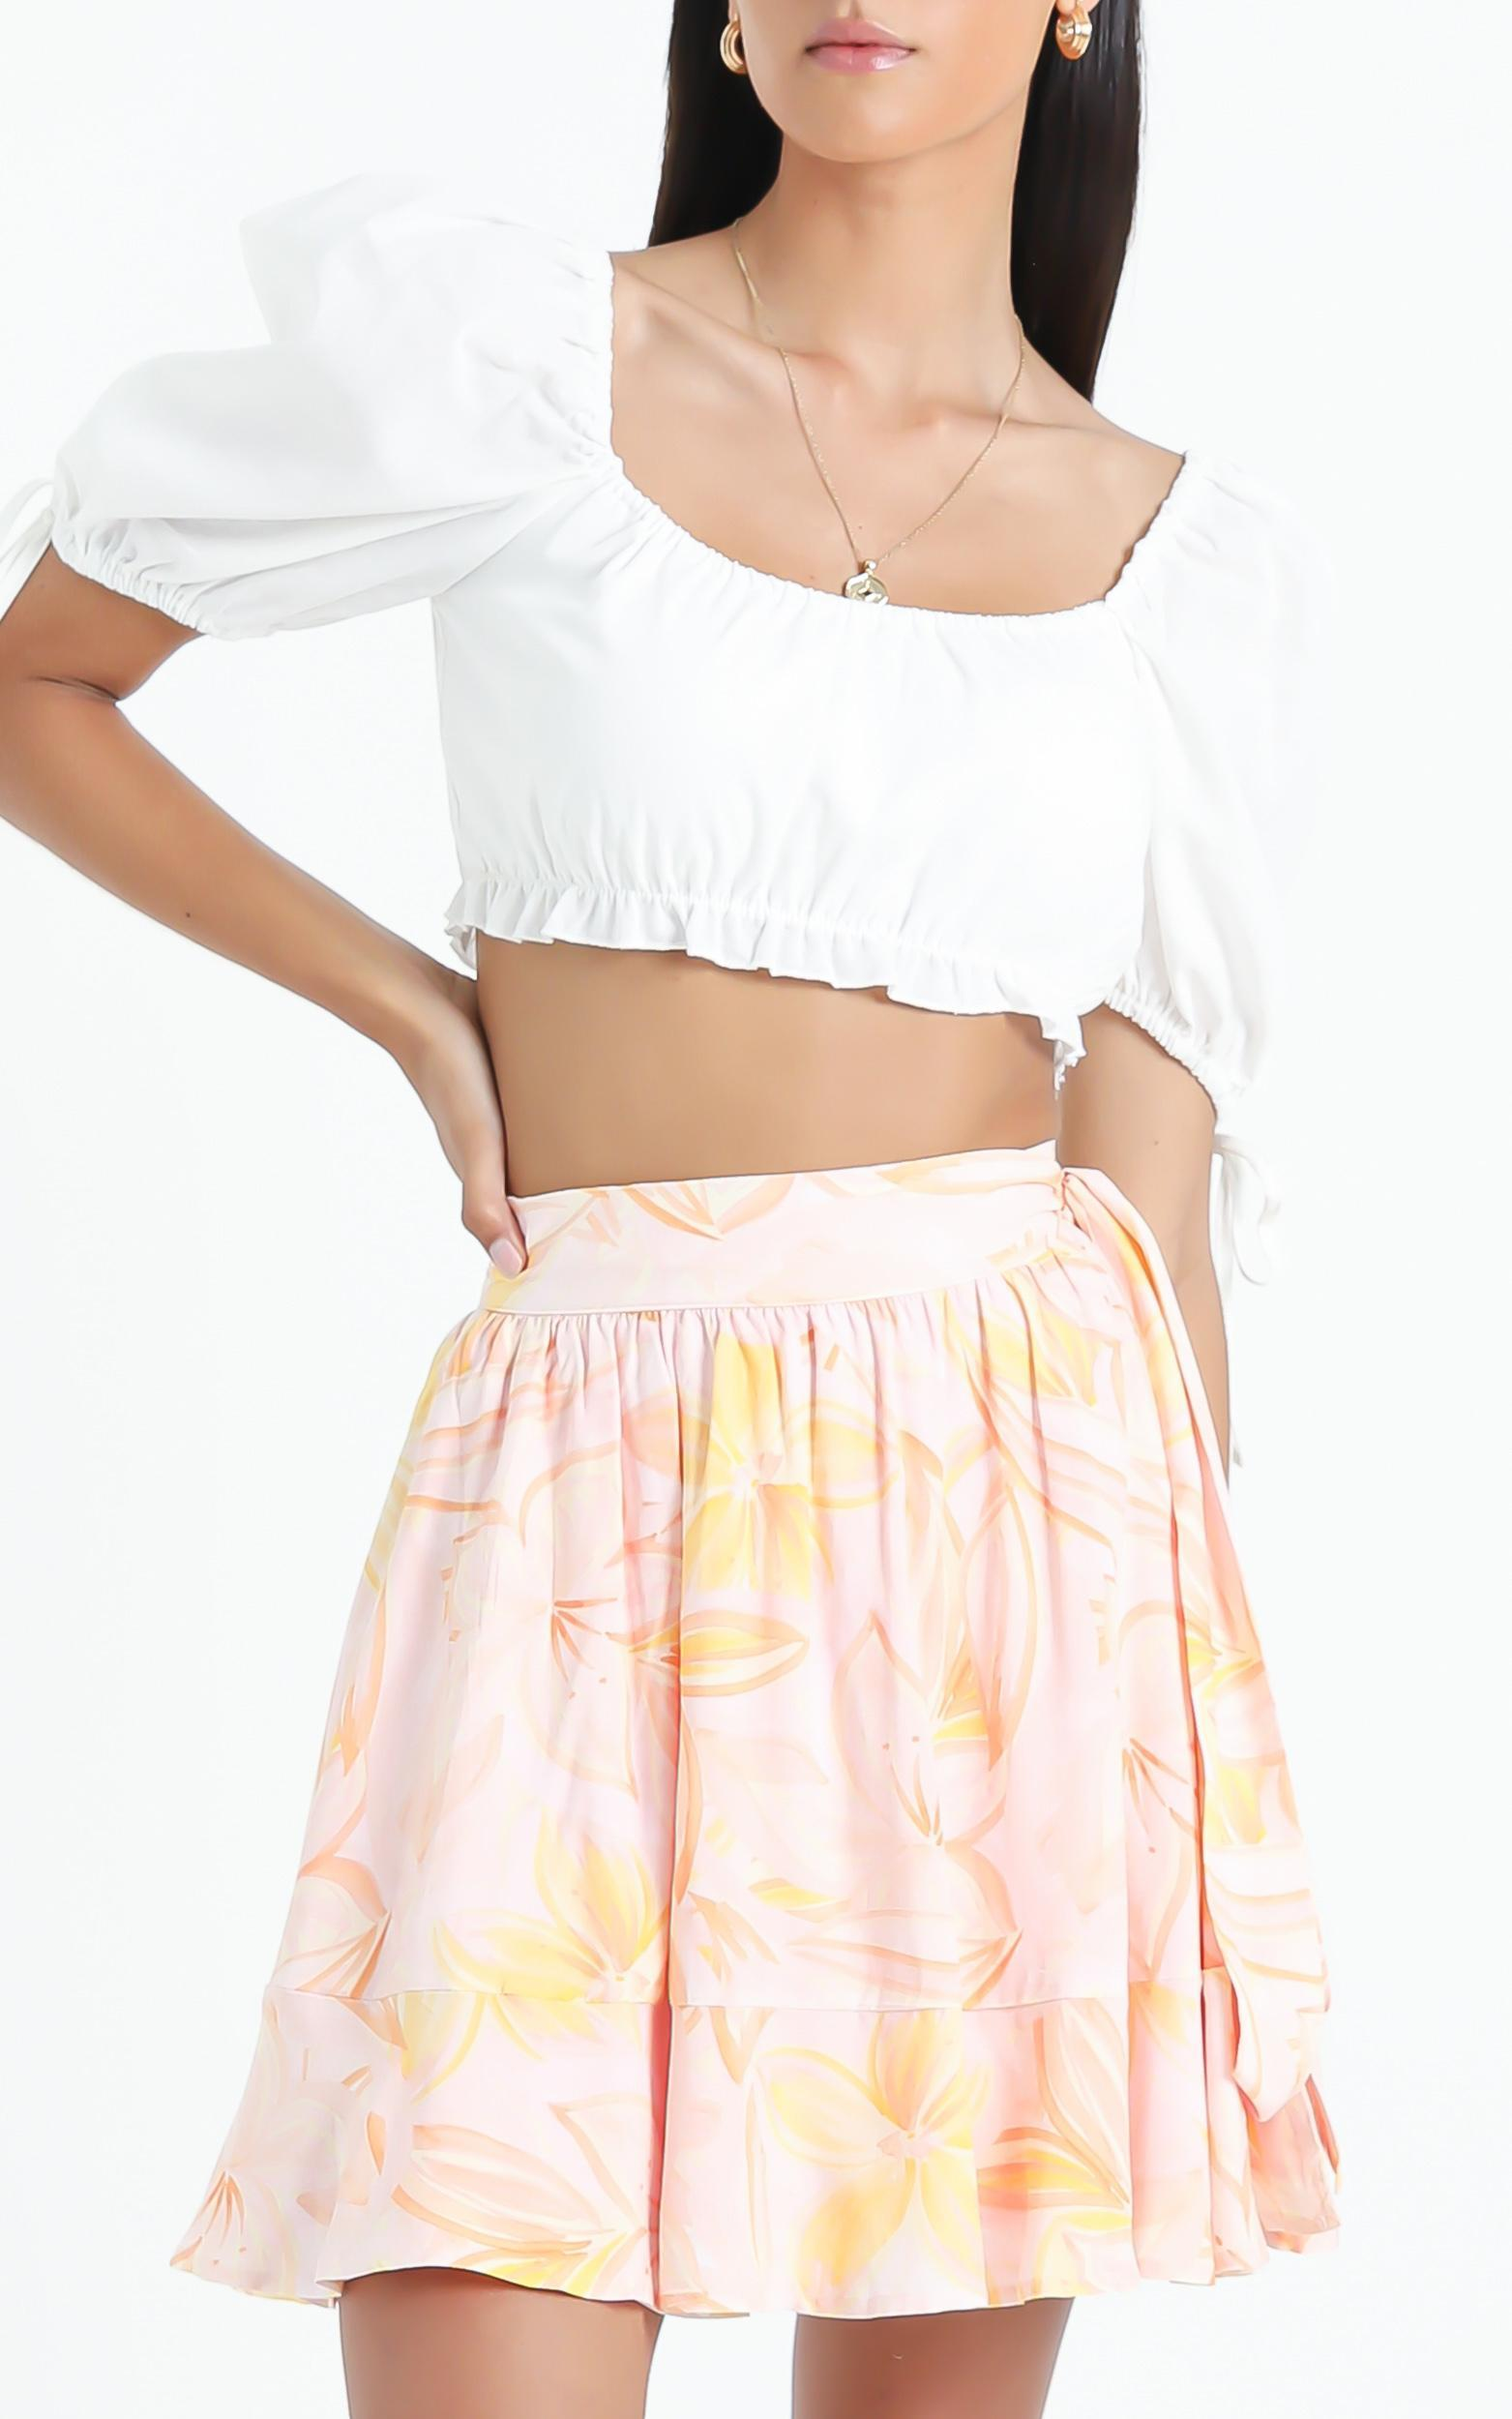 Eimear Skirt in Summer Floral - 6 (XS), Pink, hi-res image number null